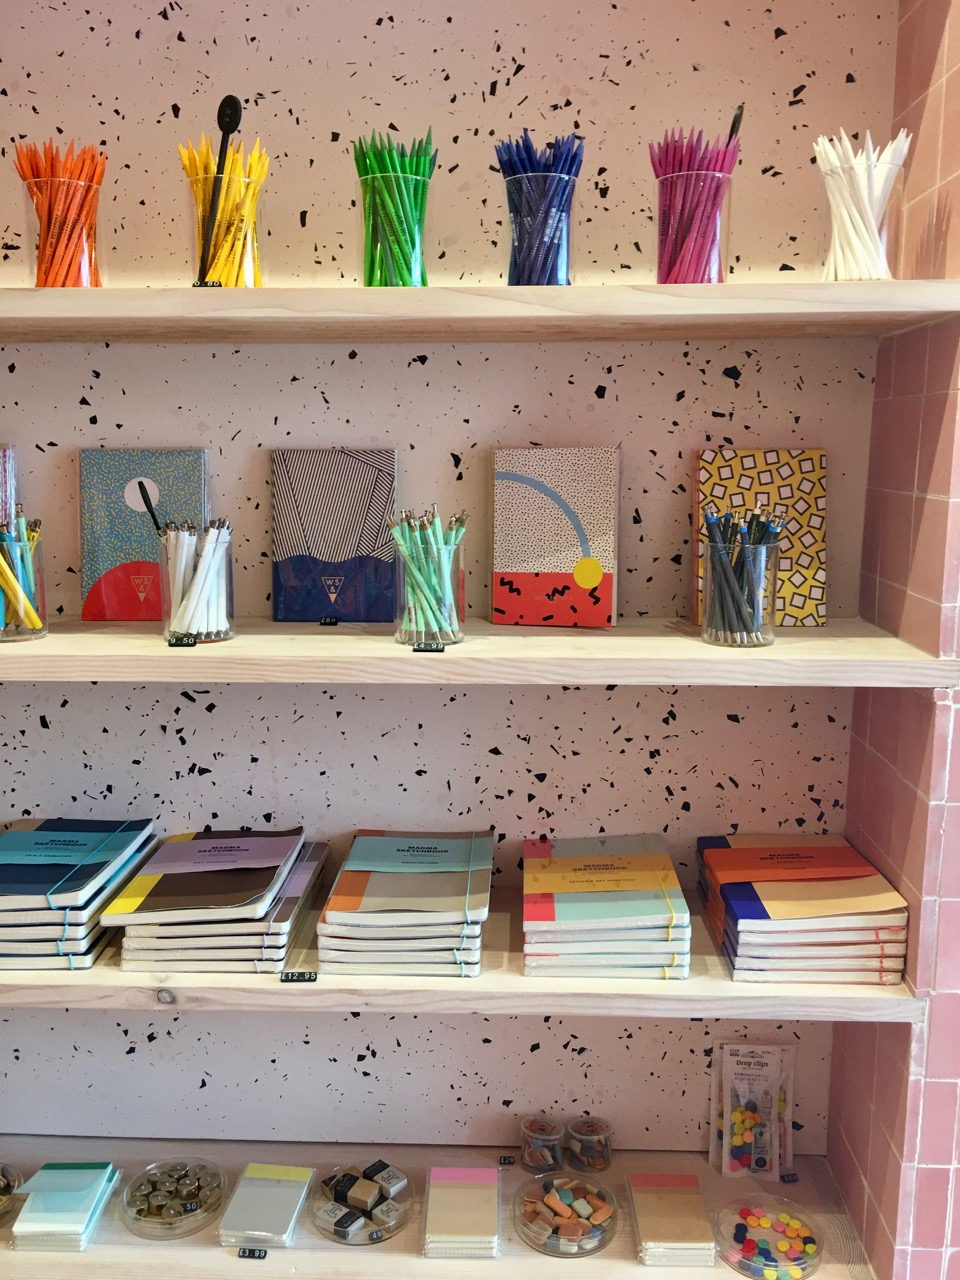 A wall of pencils, notebooks and accessories